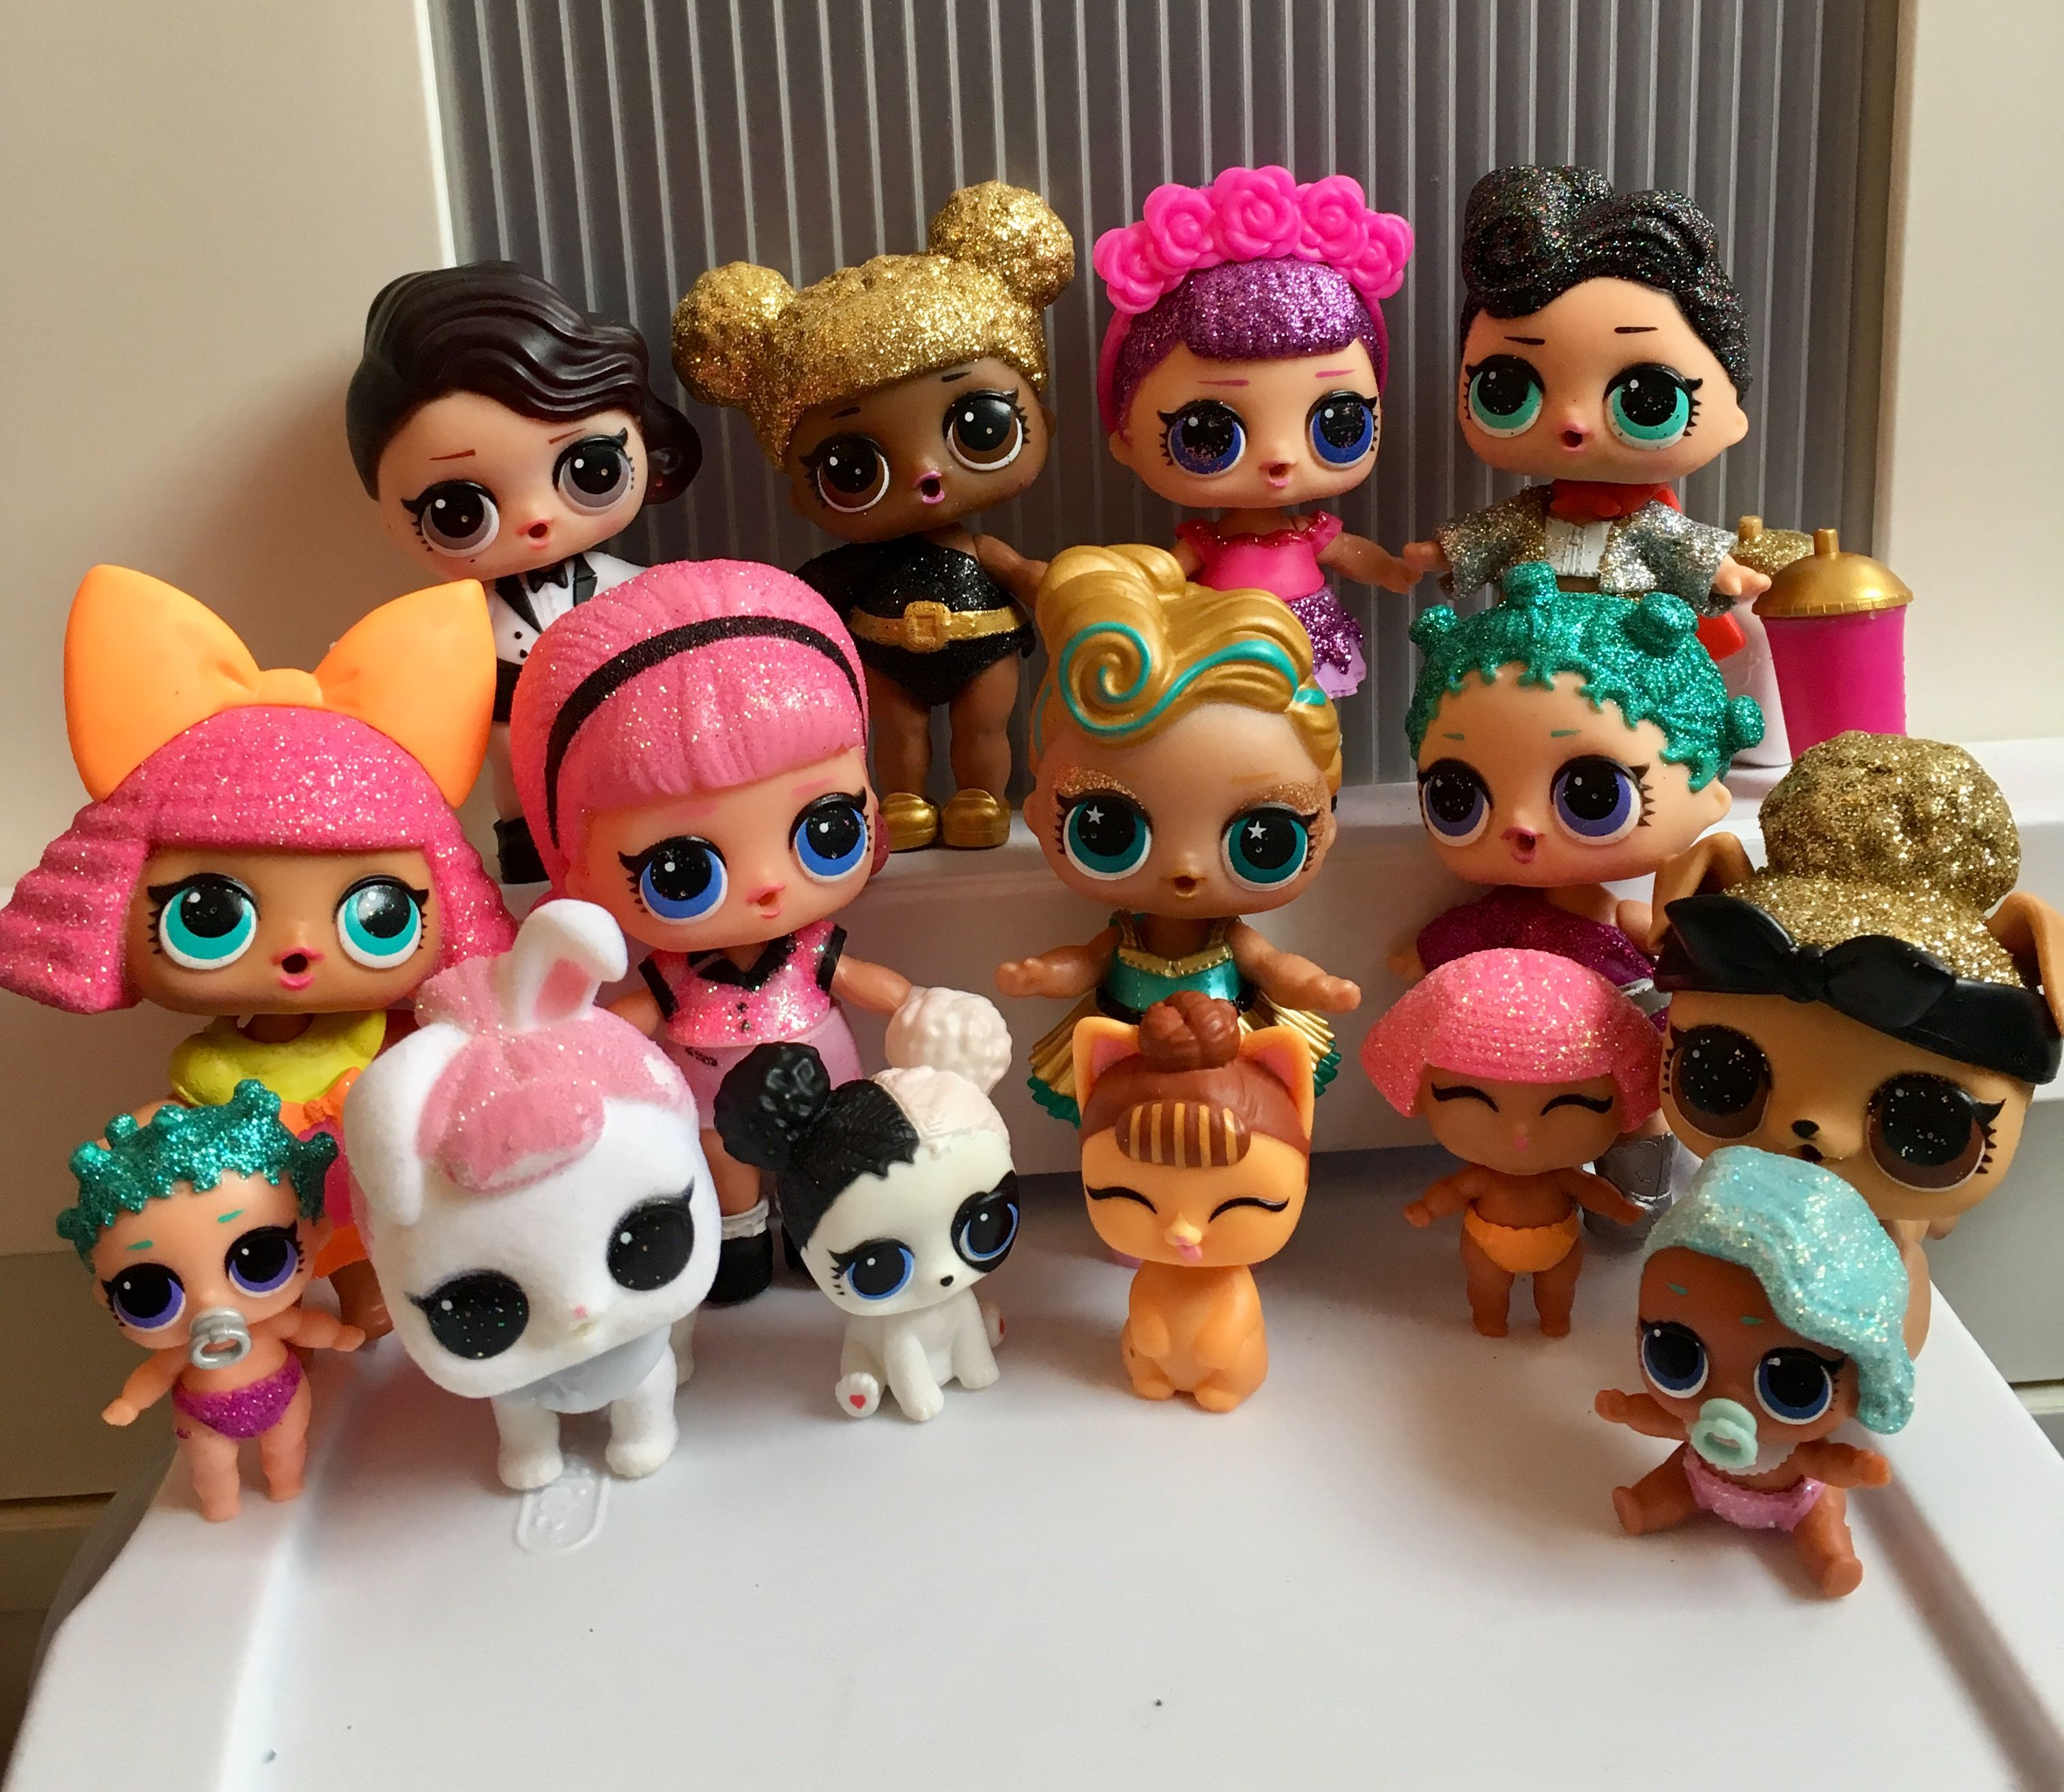 Our Rare Lols The Collection Is Growing Collectlol Lolsurprisedolls Lolsurprise Lolsurprisepets Lol Dolls Kids Art Projects Monster High Birthday Party